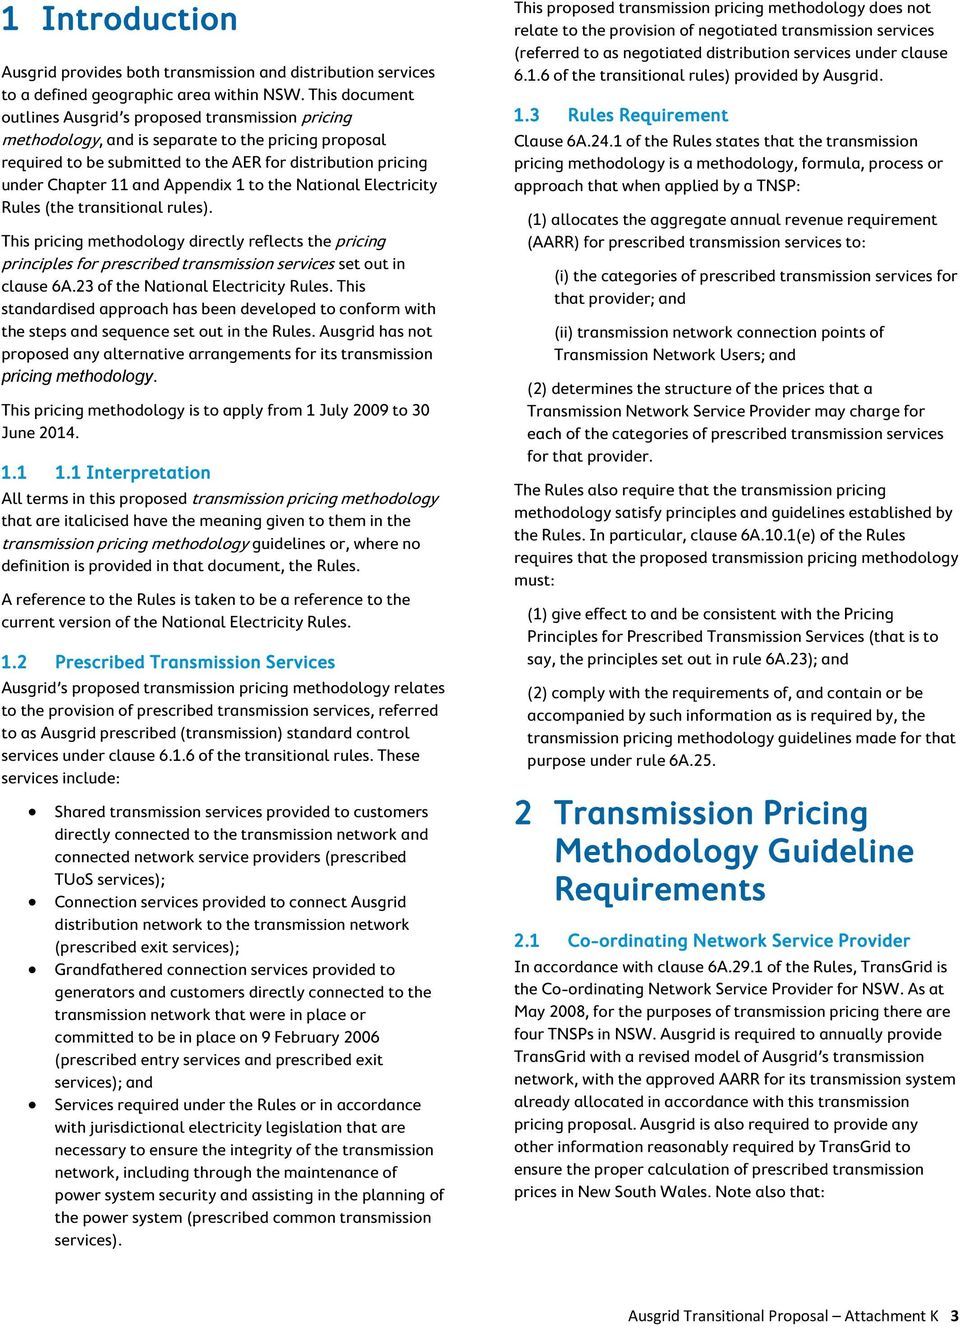 Appendix 1 to the National Electricity Rules (the transitional rules). This pricing methodology directly reflects the pricing principles for prescribed transmission services set out in clause 6A.